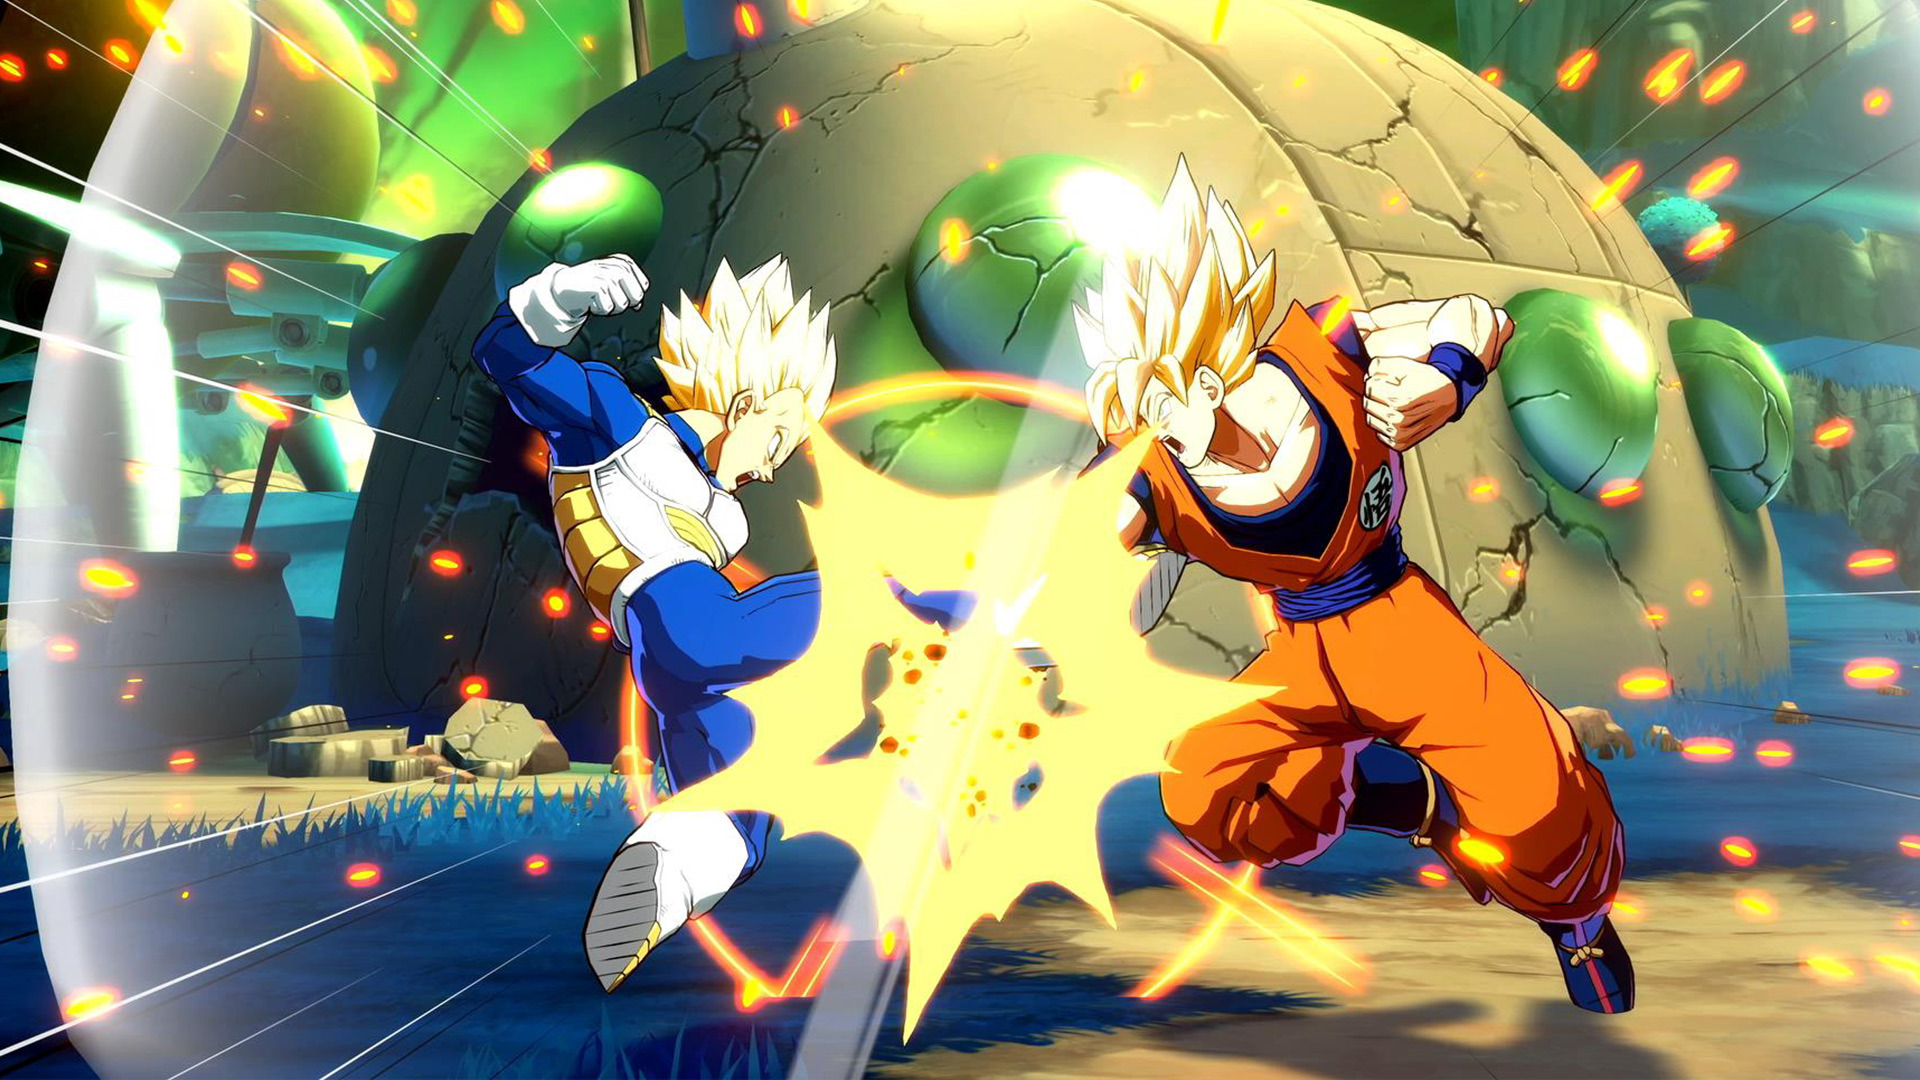 Dragon Ball Fighter Z New Gameplay Videos Showcase Intense Matches Between Heroes And Villains